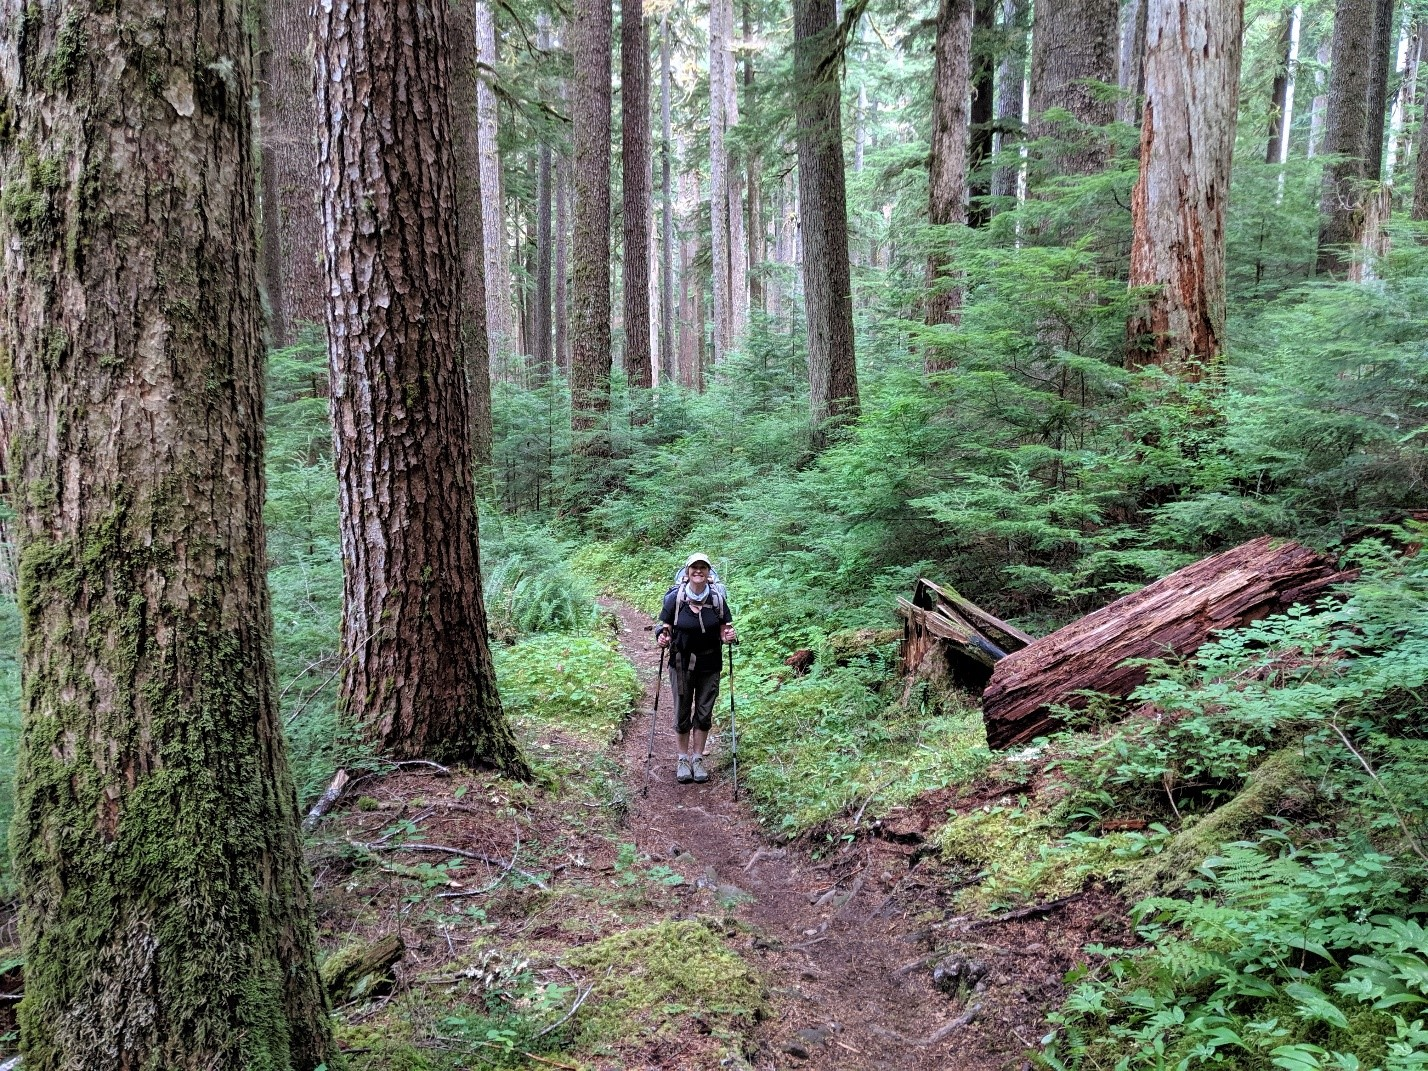 Trisha Wirta in her hiking gear walking up a trail in the National Forest